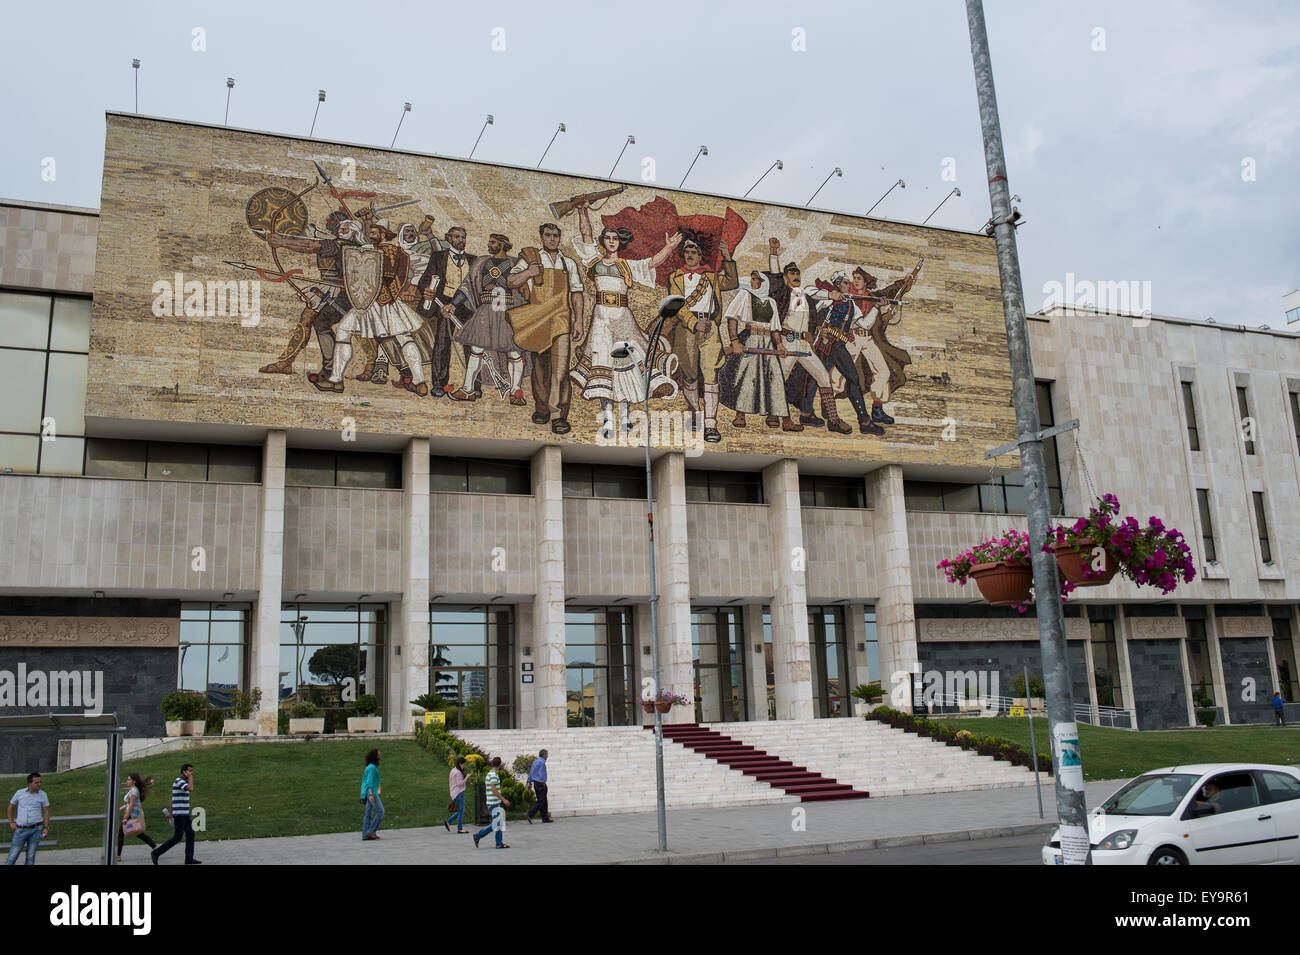 Murales in the most important place of Albania capital,  Giorgio Castriota Skanderbeg Place, Tirana, Albania - Stock Image